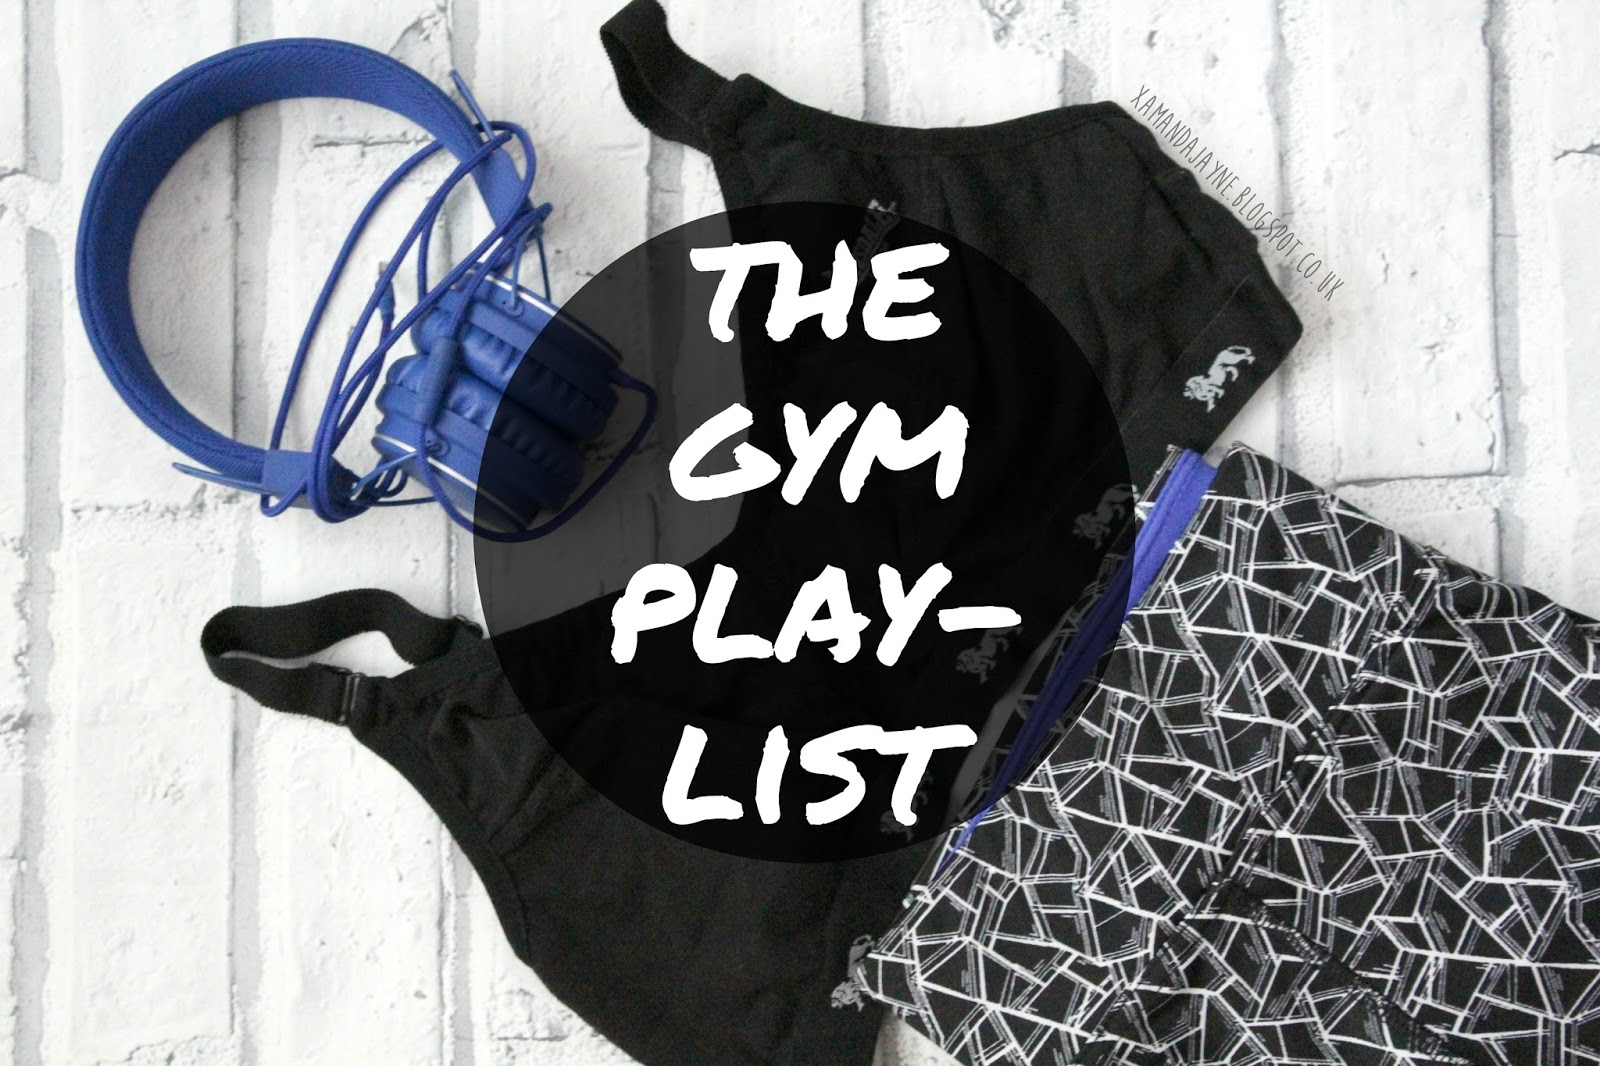 gym playlist, gym music, pop music, drum n bass, electronic, upbeat music, fast paced music, workout music, fitness music, fitness playlist, workout playlist